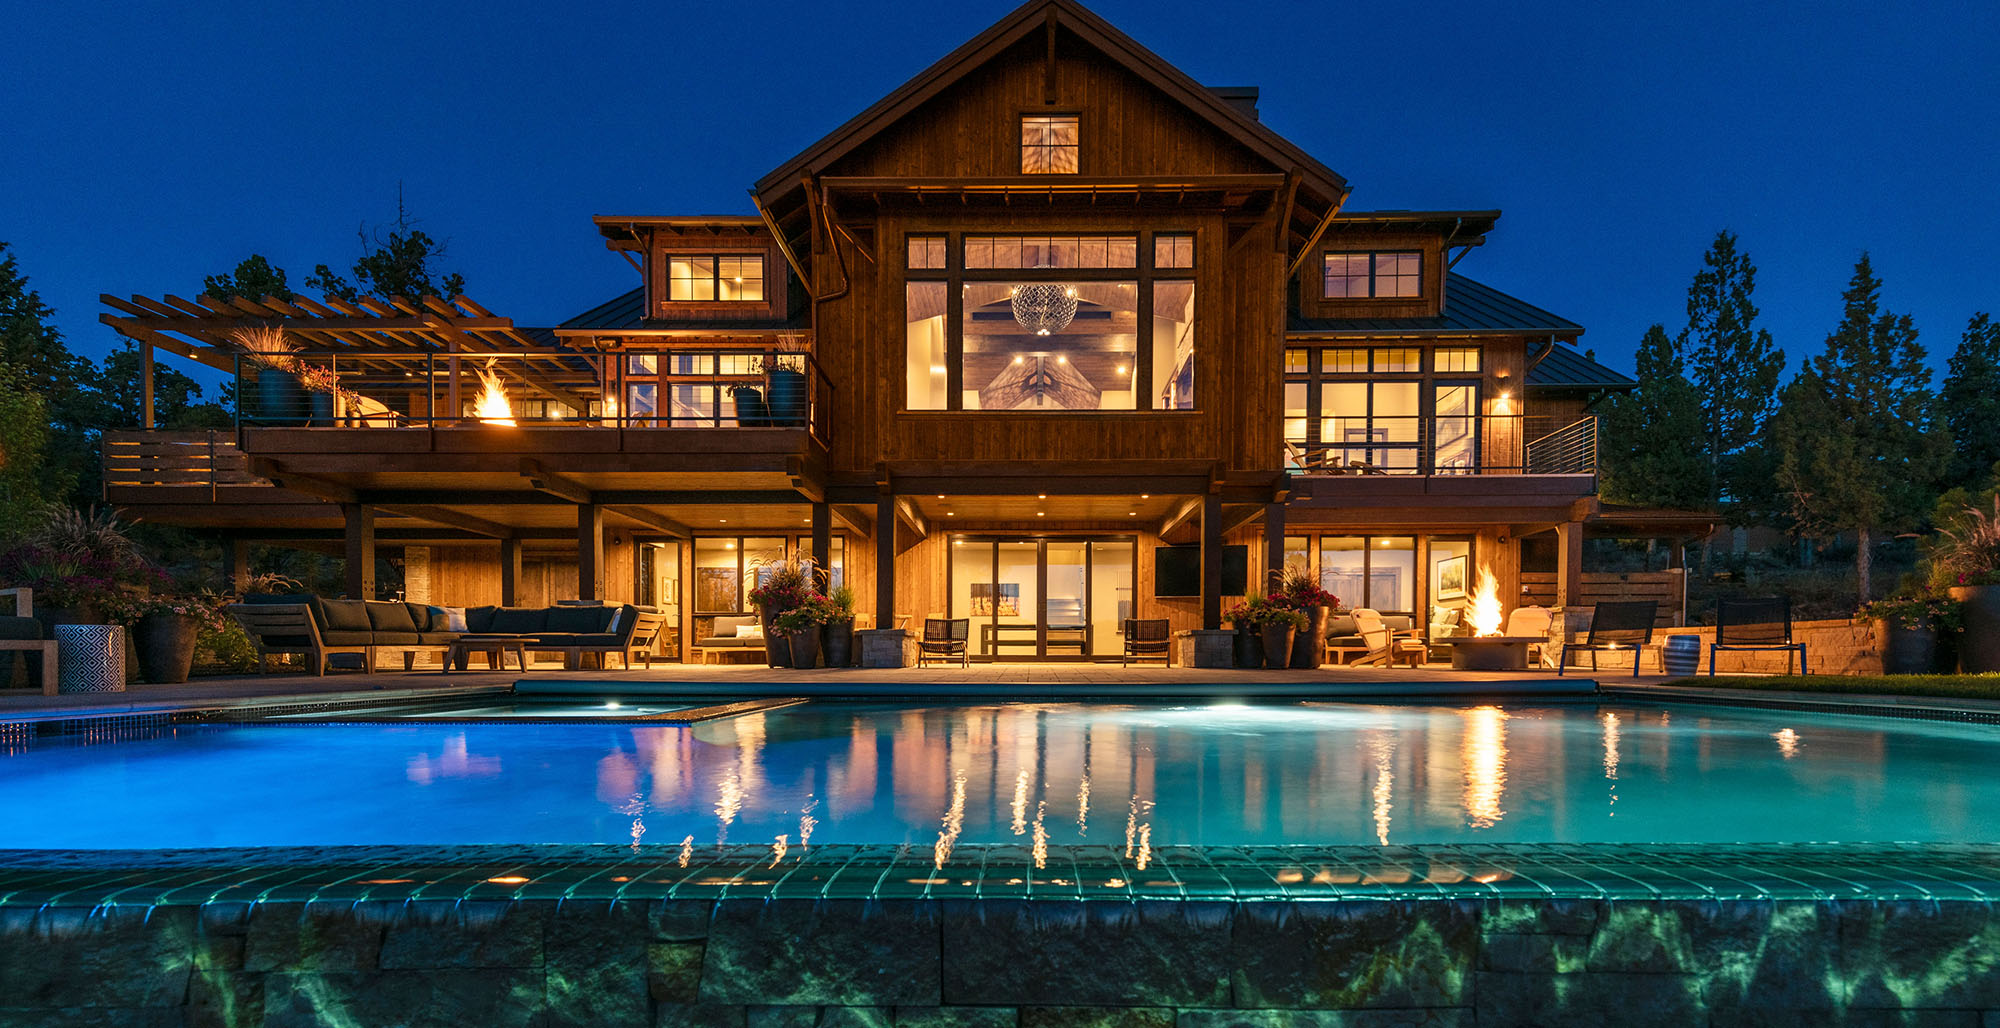 NW Lodge Style Home and Landscape